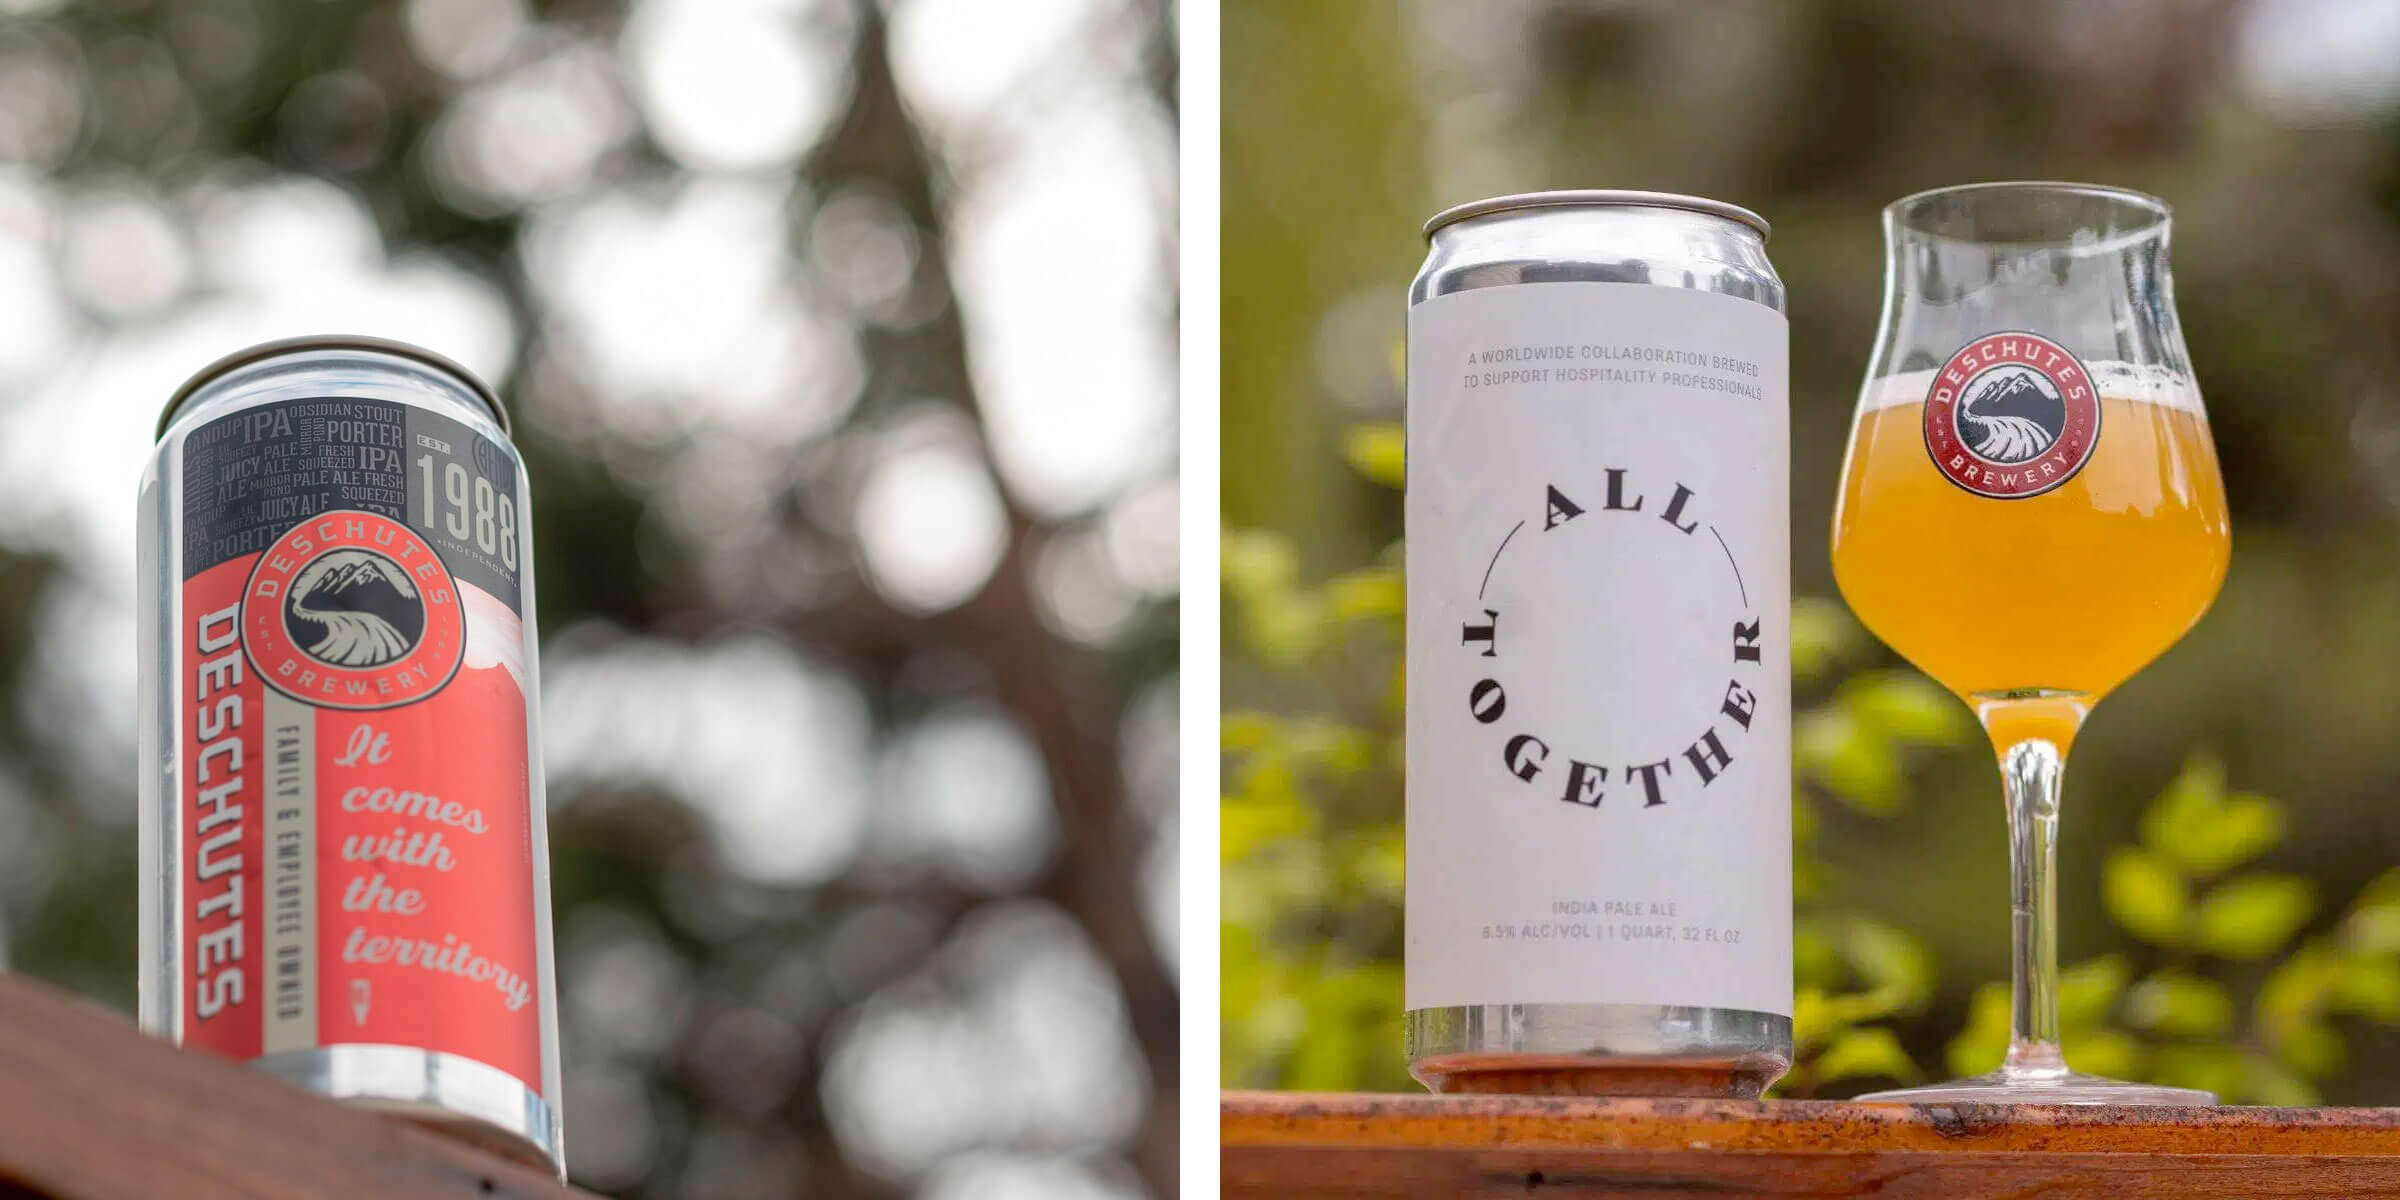 The All Together Beer is one of two beers being released by Deschutes Brewery in support of the hospitality industry